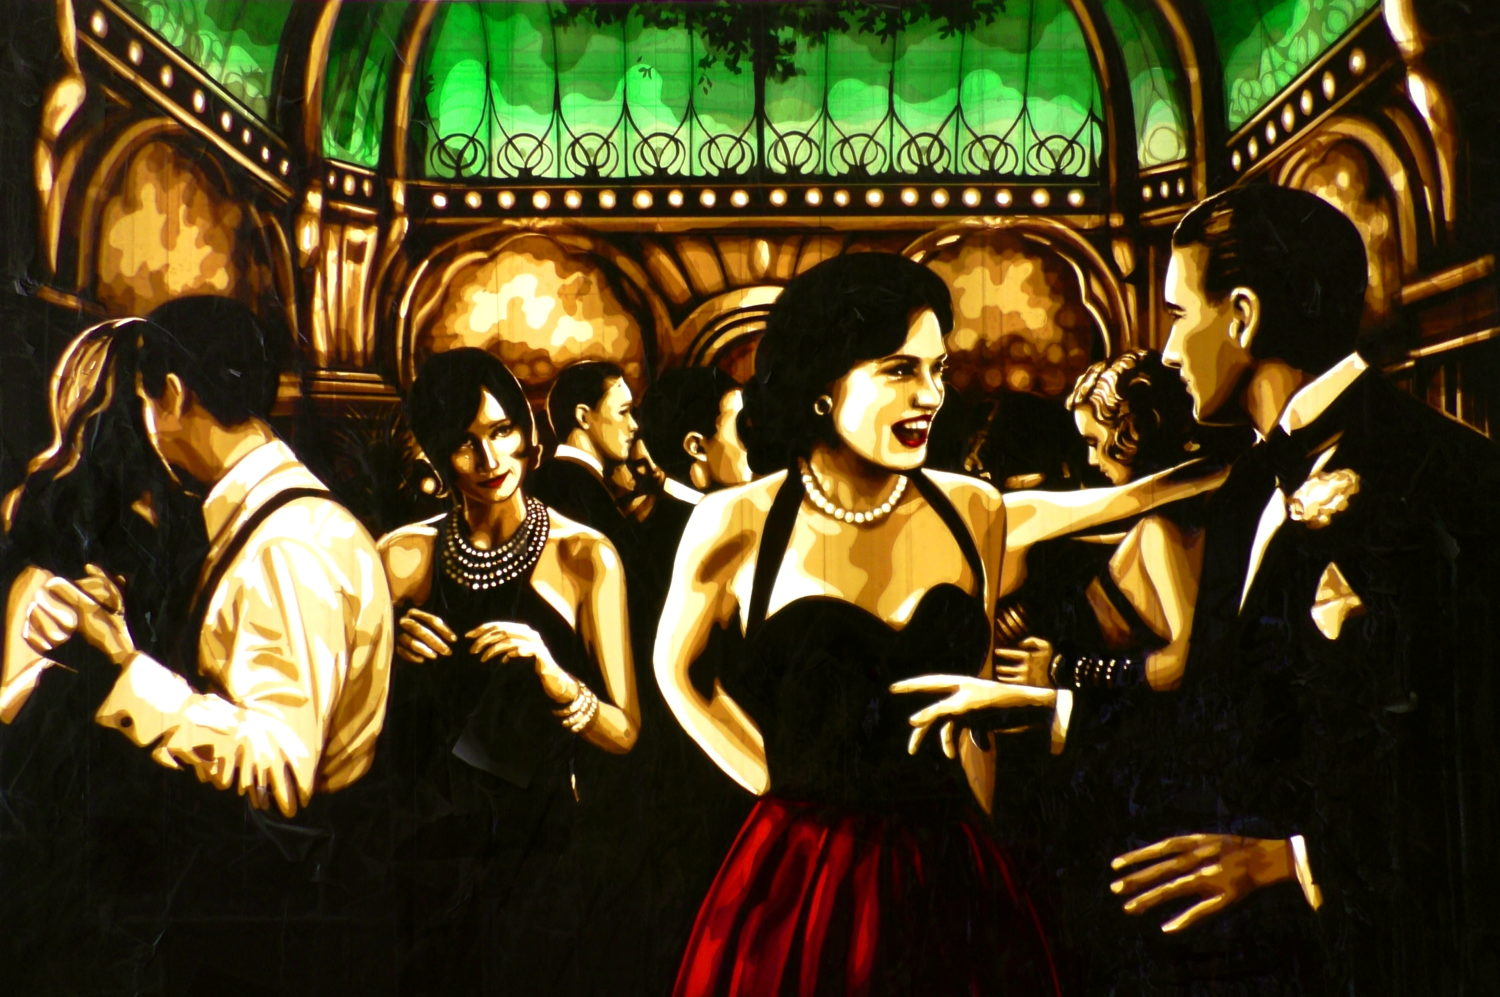 Contemporary artwork created by Max Zorn in Great Gatsby style